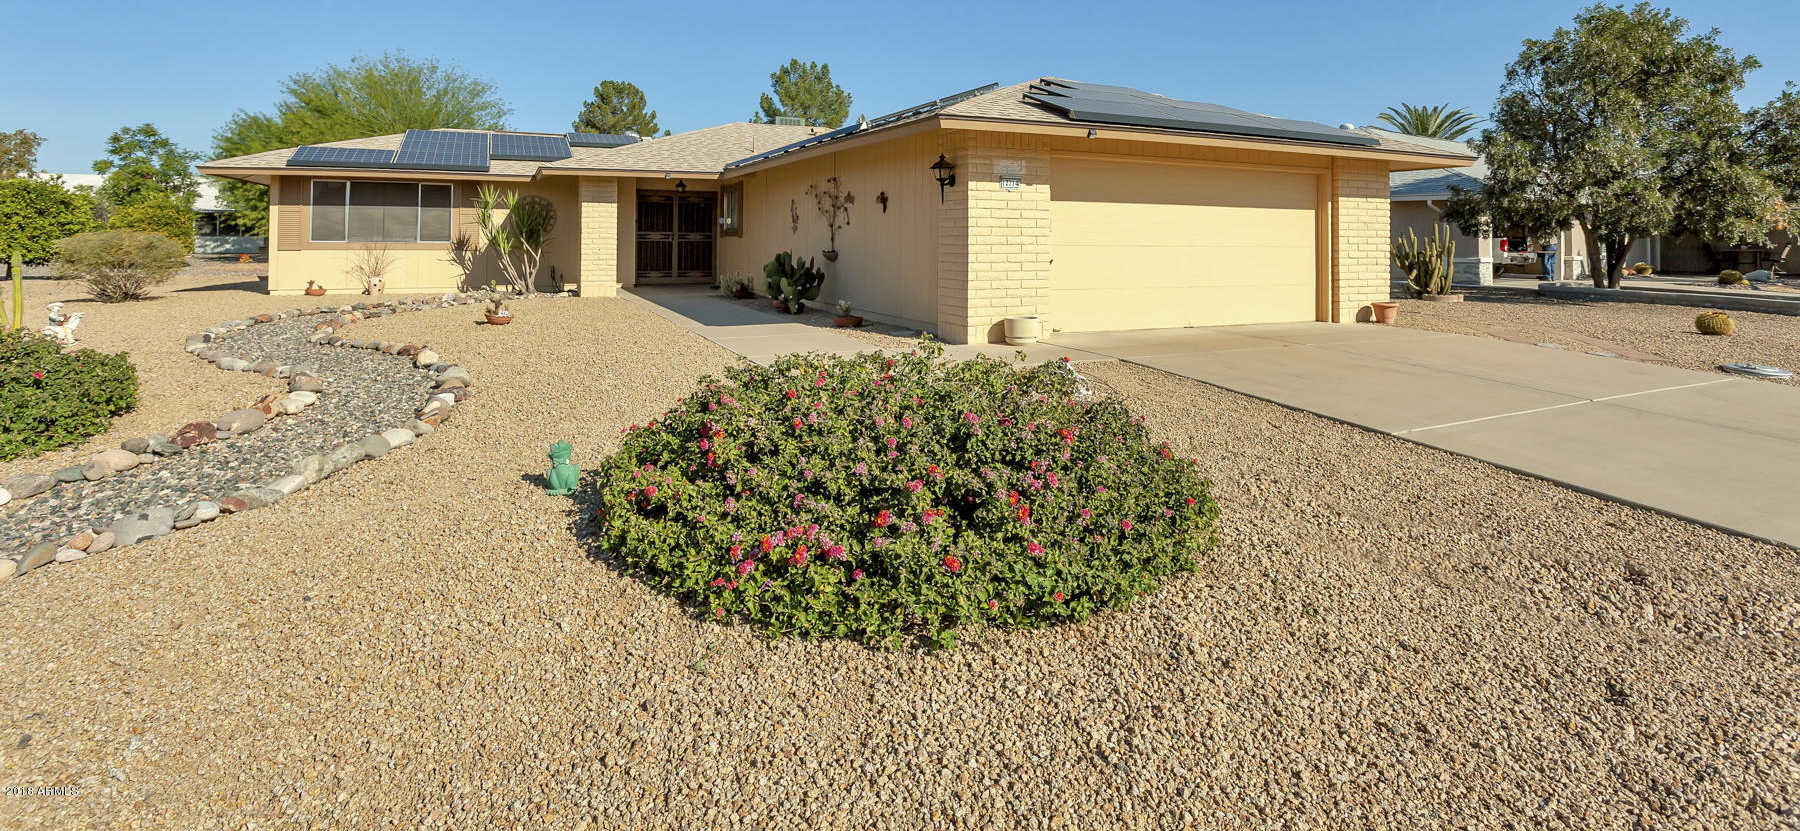 $200,000 - 2Br/2Ba - Home for Sale in Sun City West 12 Lot 1-532 & Tr A-f, Sun City West